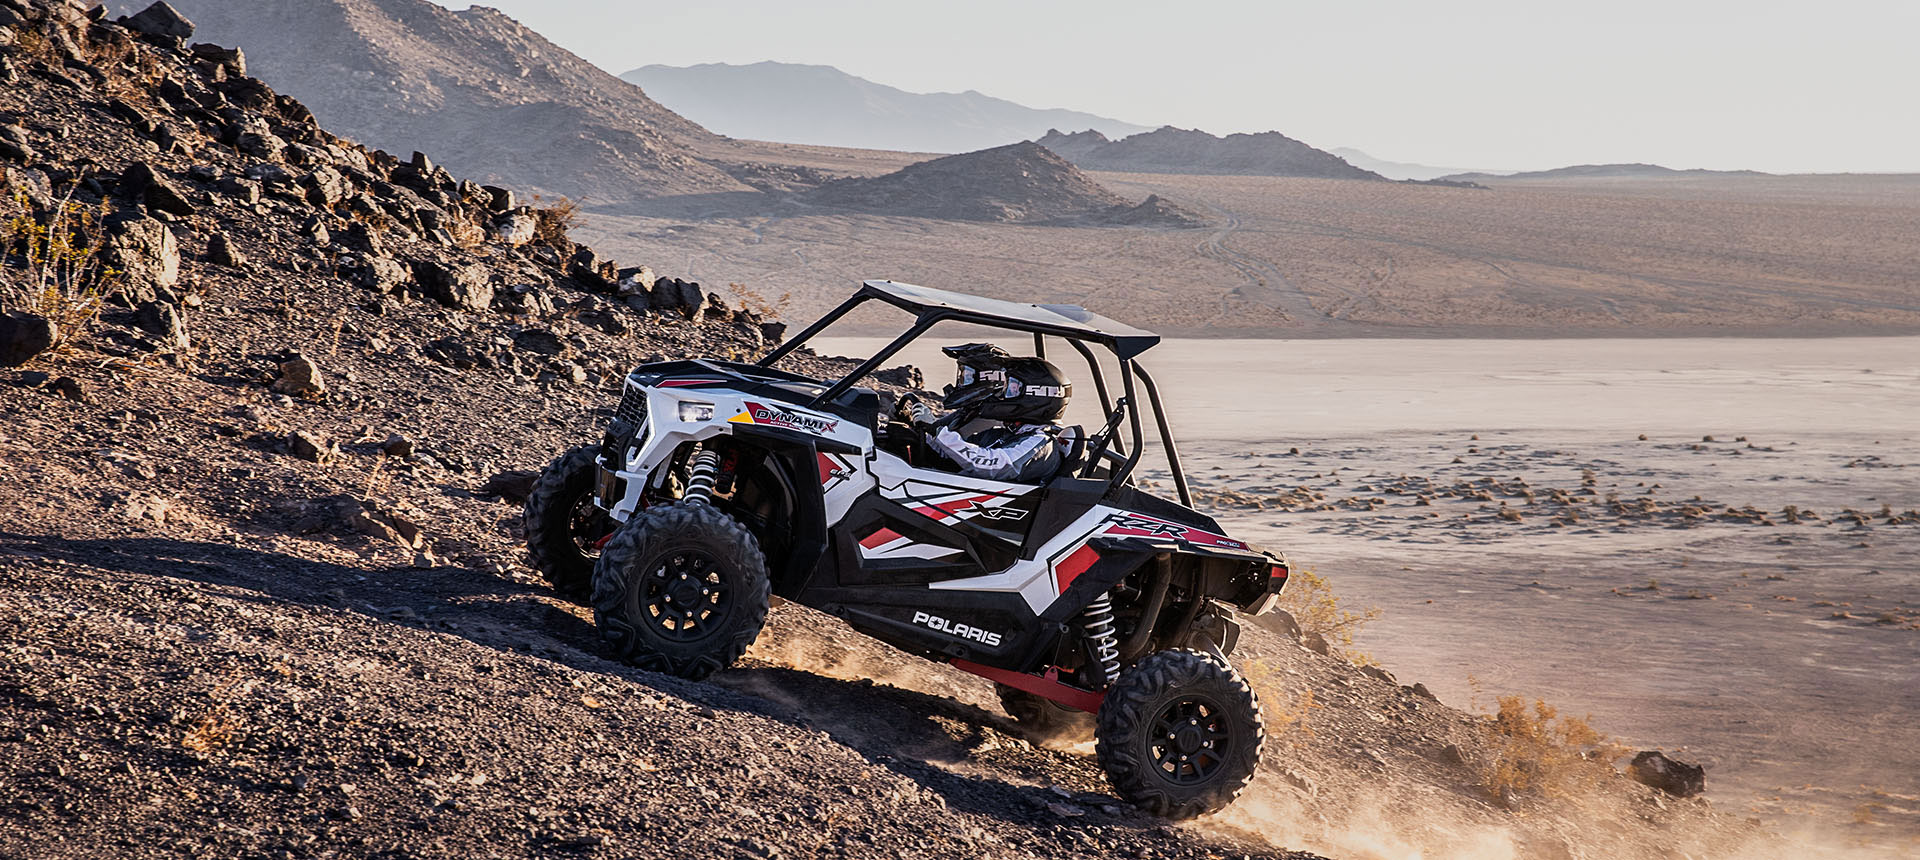 2019 Polaris RZR XP 1000 in Santa Maria, California - Photo 5